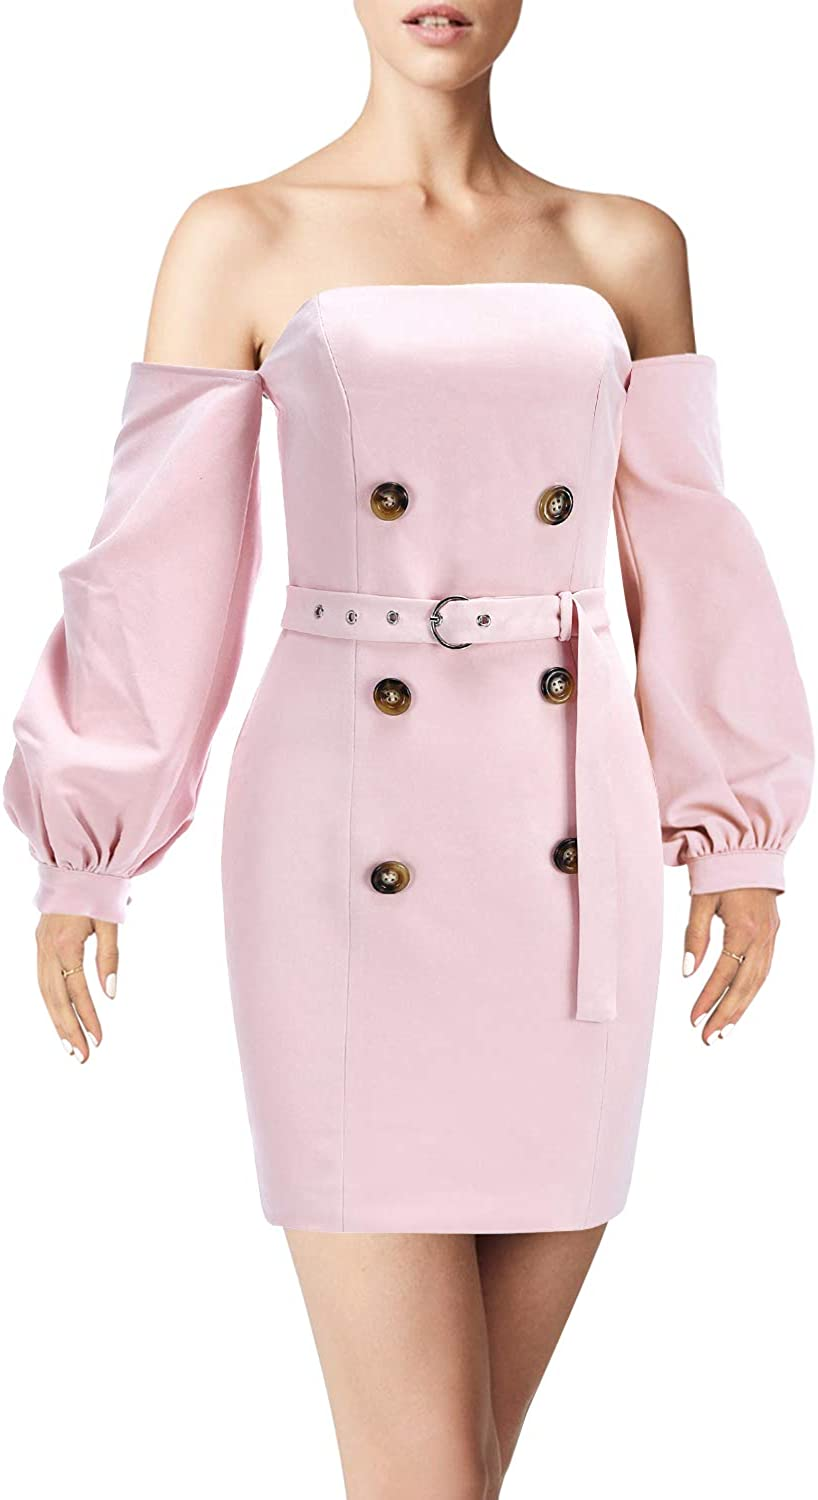 Hego Women's Nude Club Night Out Off The Shoulder Long Sleeve Mini Bodycon Party Dress BH5578